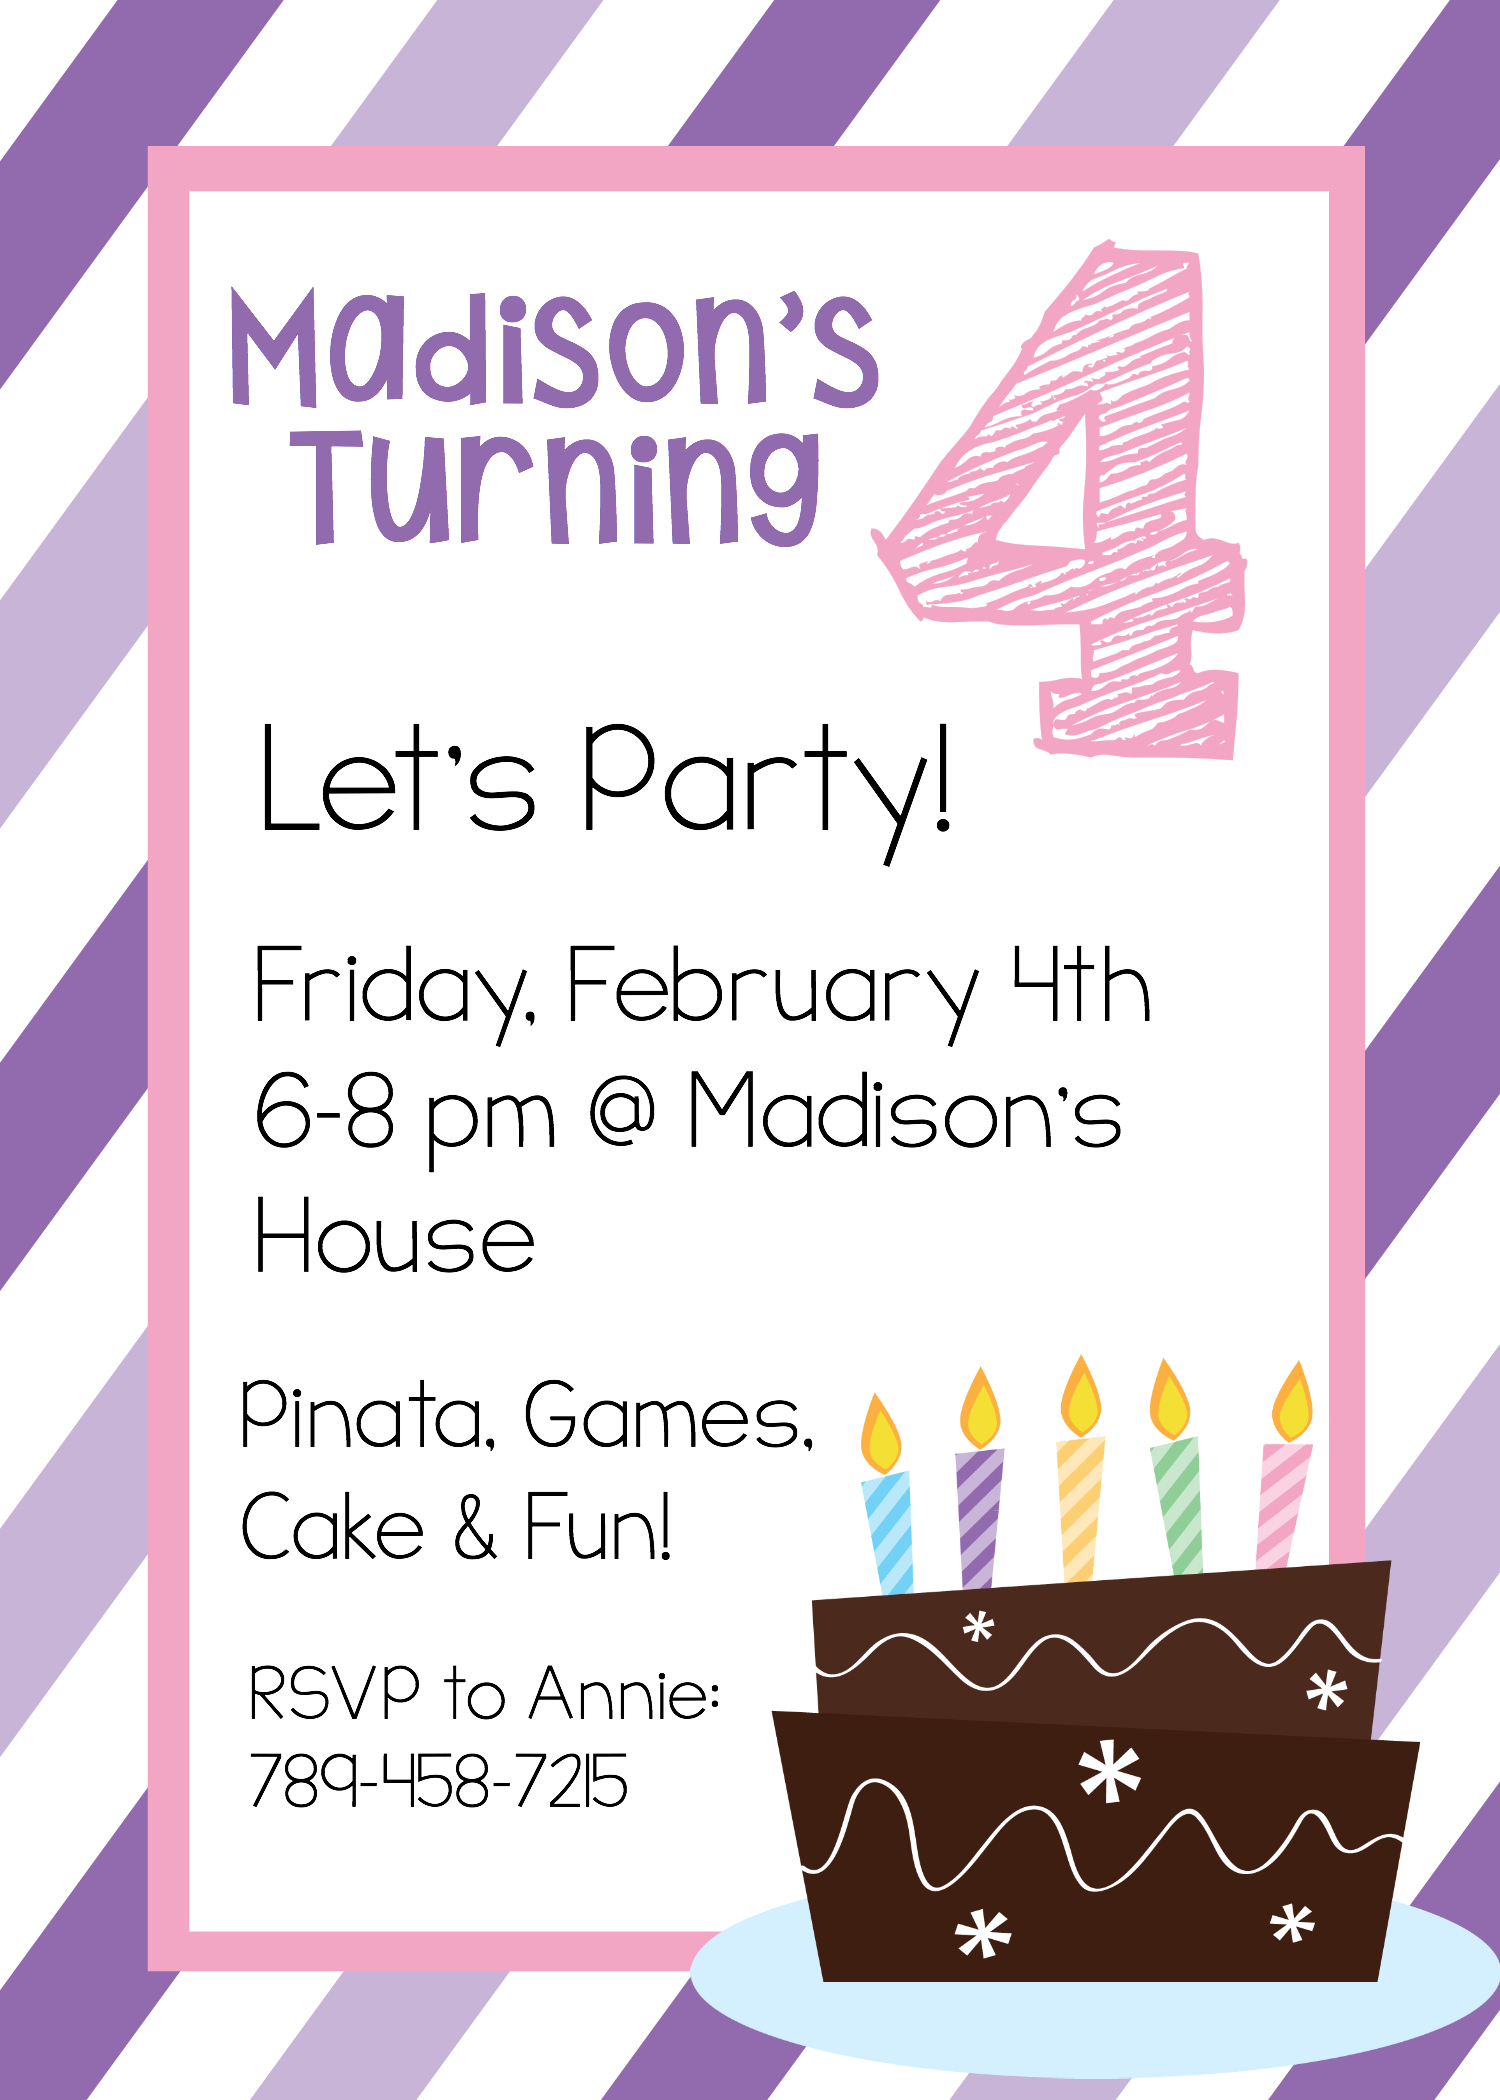 Free Printable Birthday Invitation Templates - Birthday invitation email templates free